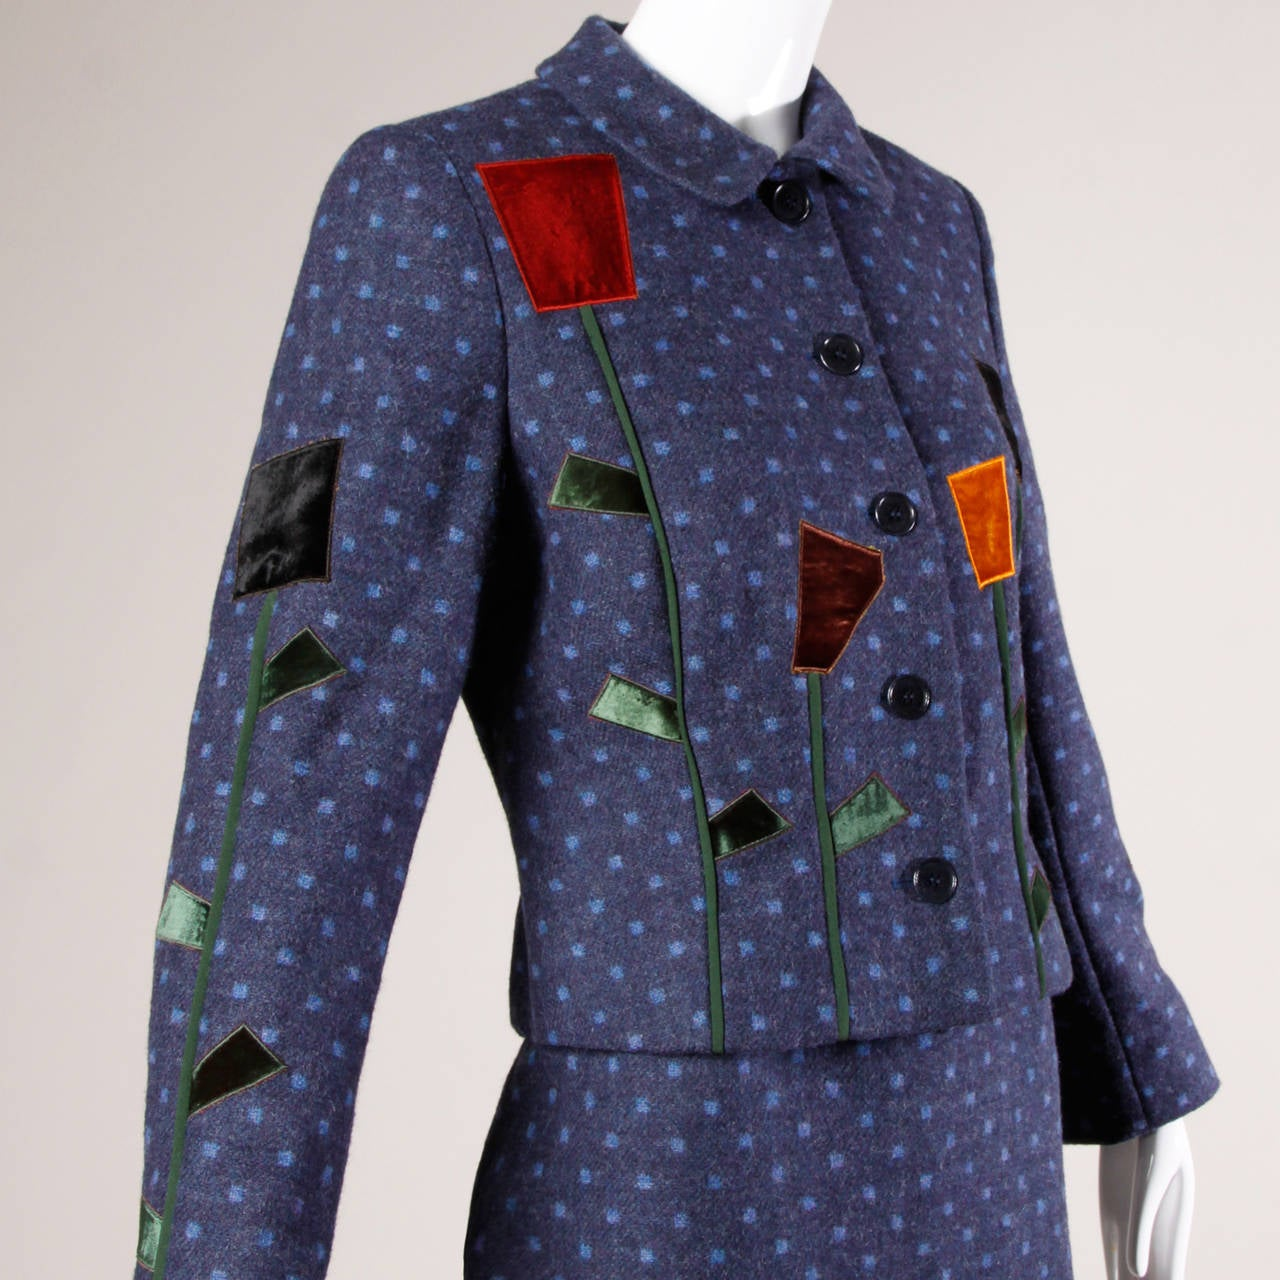 Moschino Vintage 90s Polka Dot Patchwork Skirt + Jacket Suit Ensemble 3